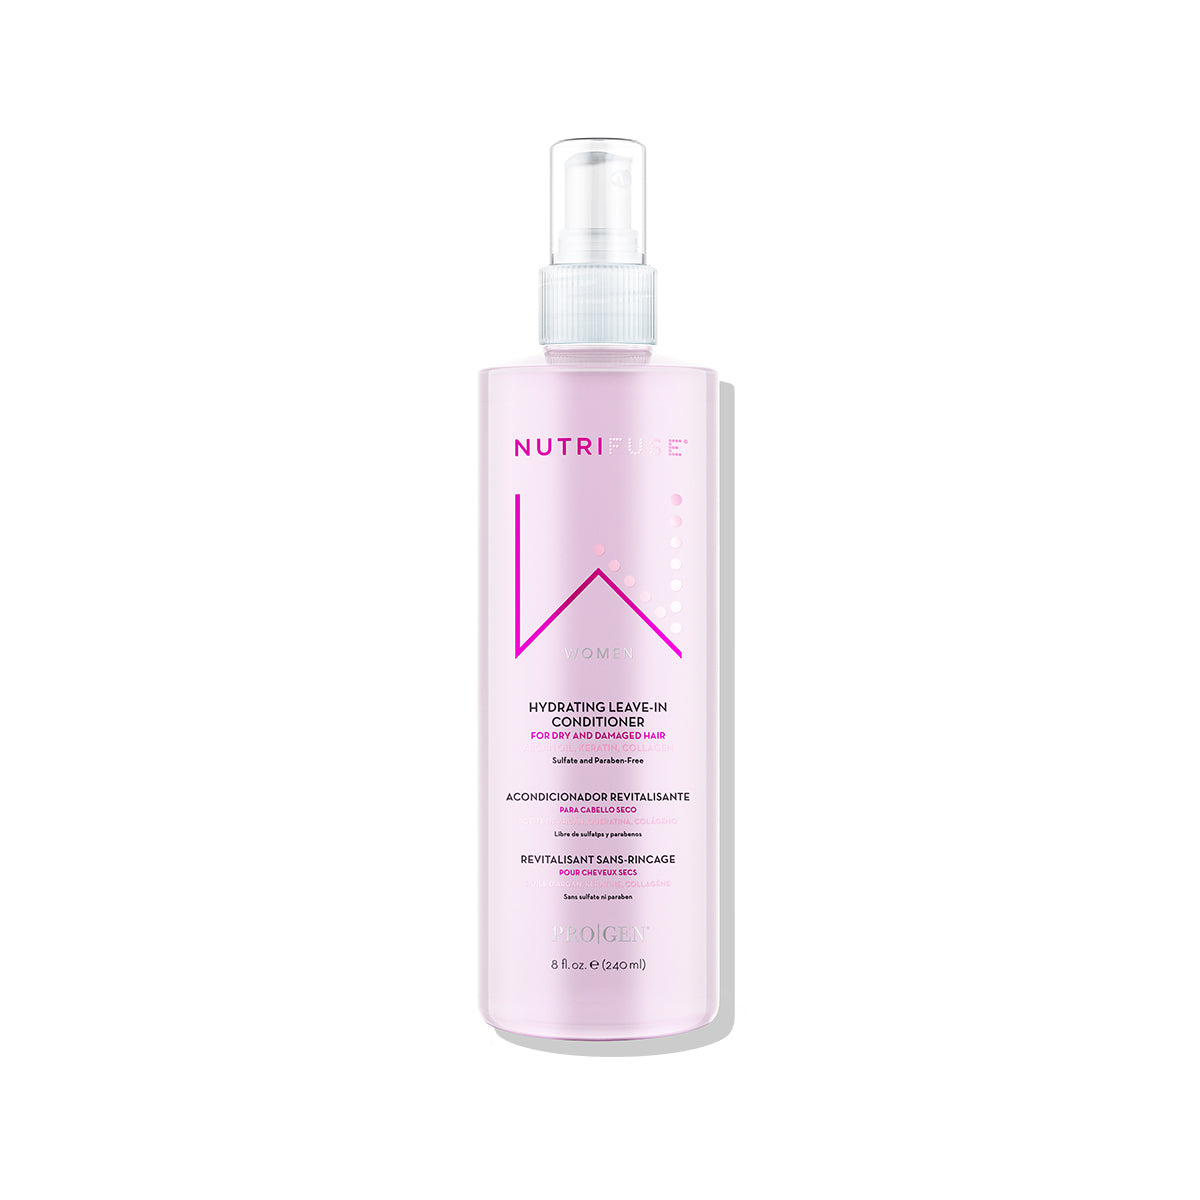 240ml hydrating leave-in conditioner for women